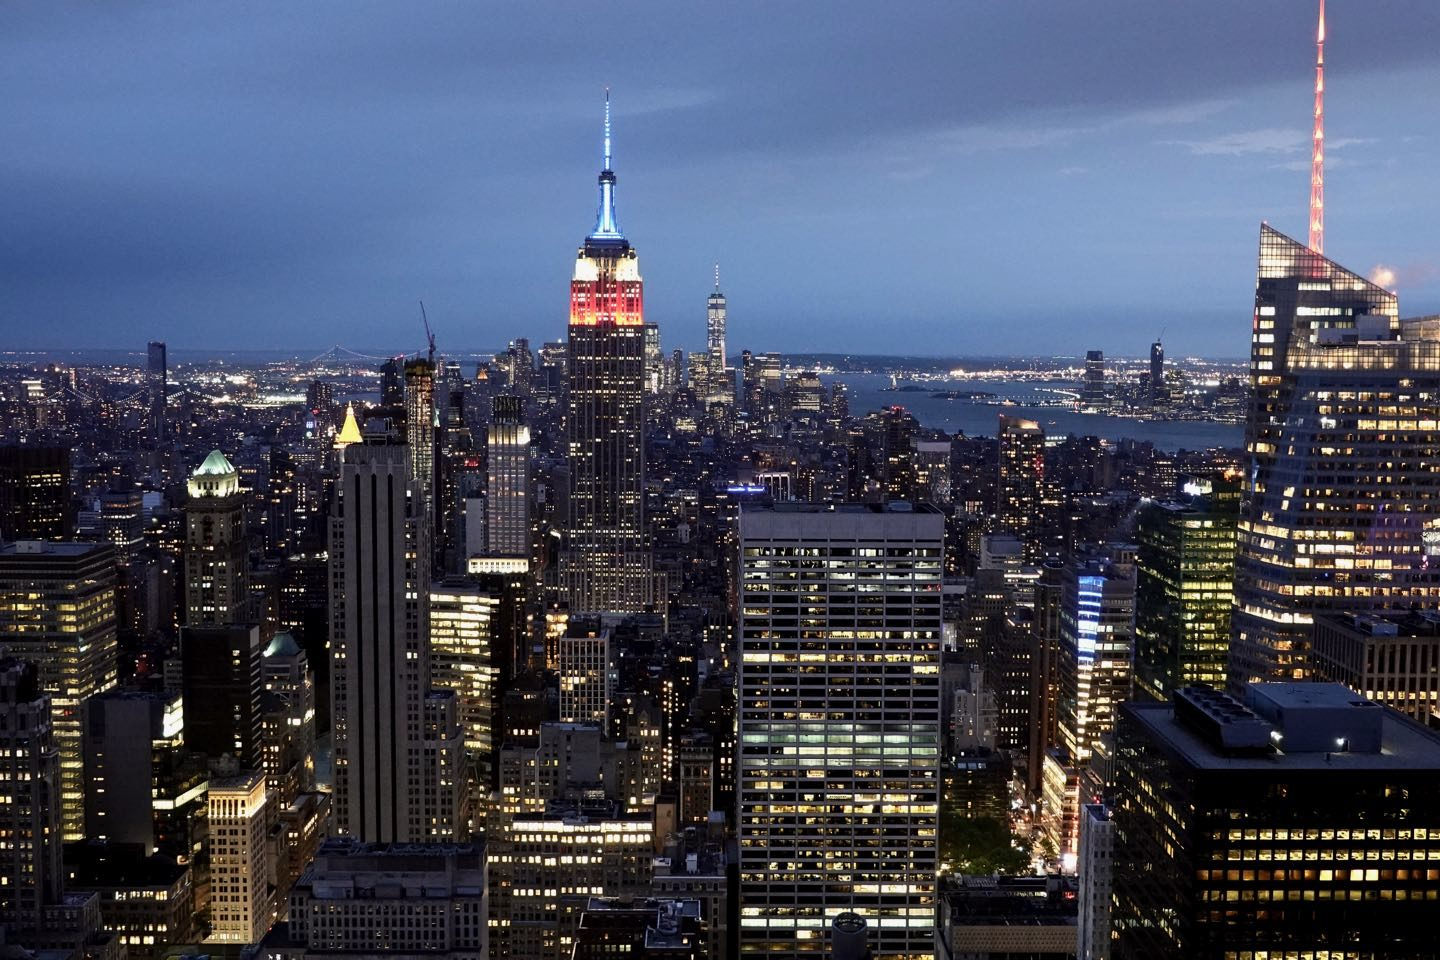 Best views of NYC. Top of the Rock Observatory at night.